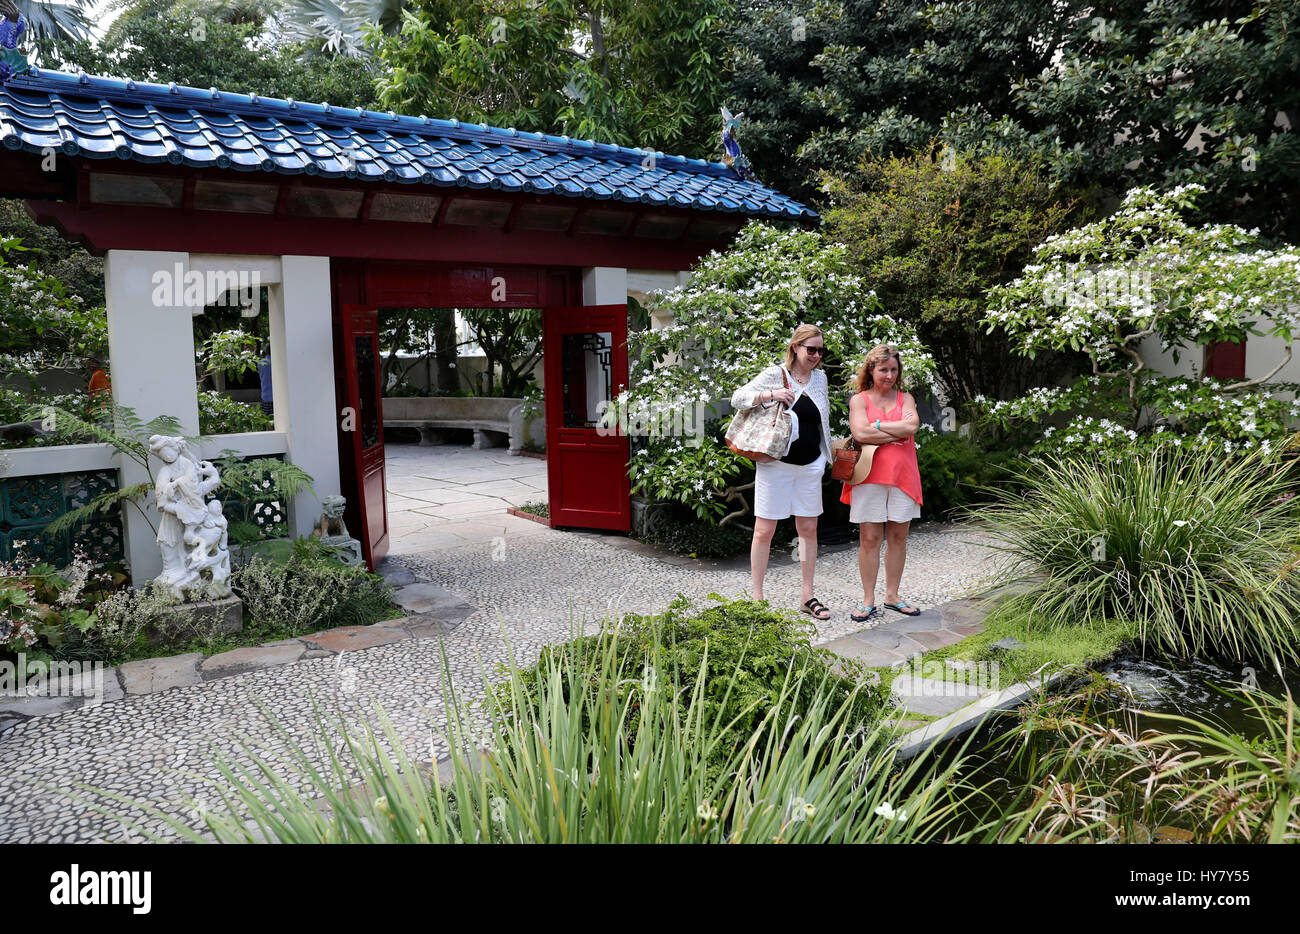 (170402)    PALM BEACH, April 2, 2017 (Xinhua)    People Visit The Chinese  Garden At The Palm Beachu0027s The Society Of The Four Arts In Palm Beach  Island, ...